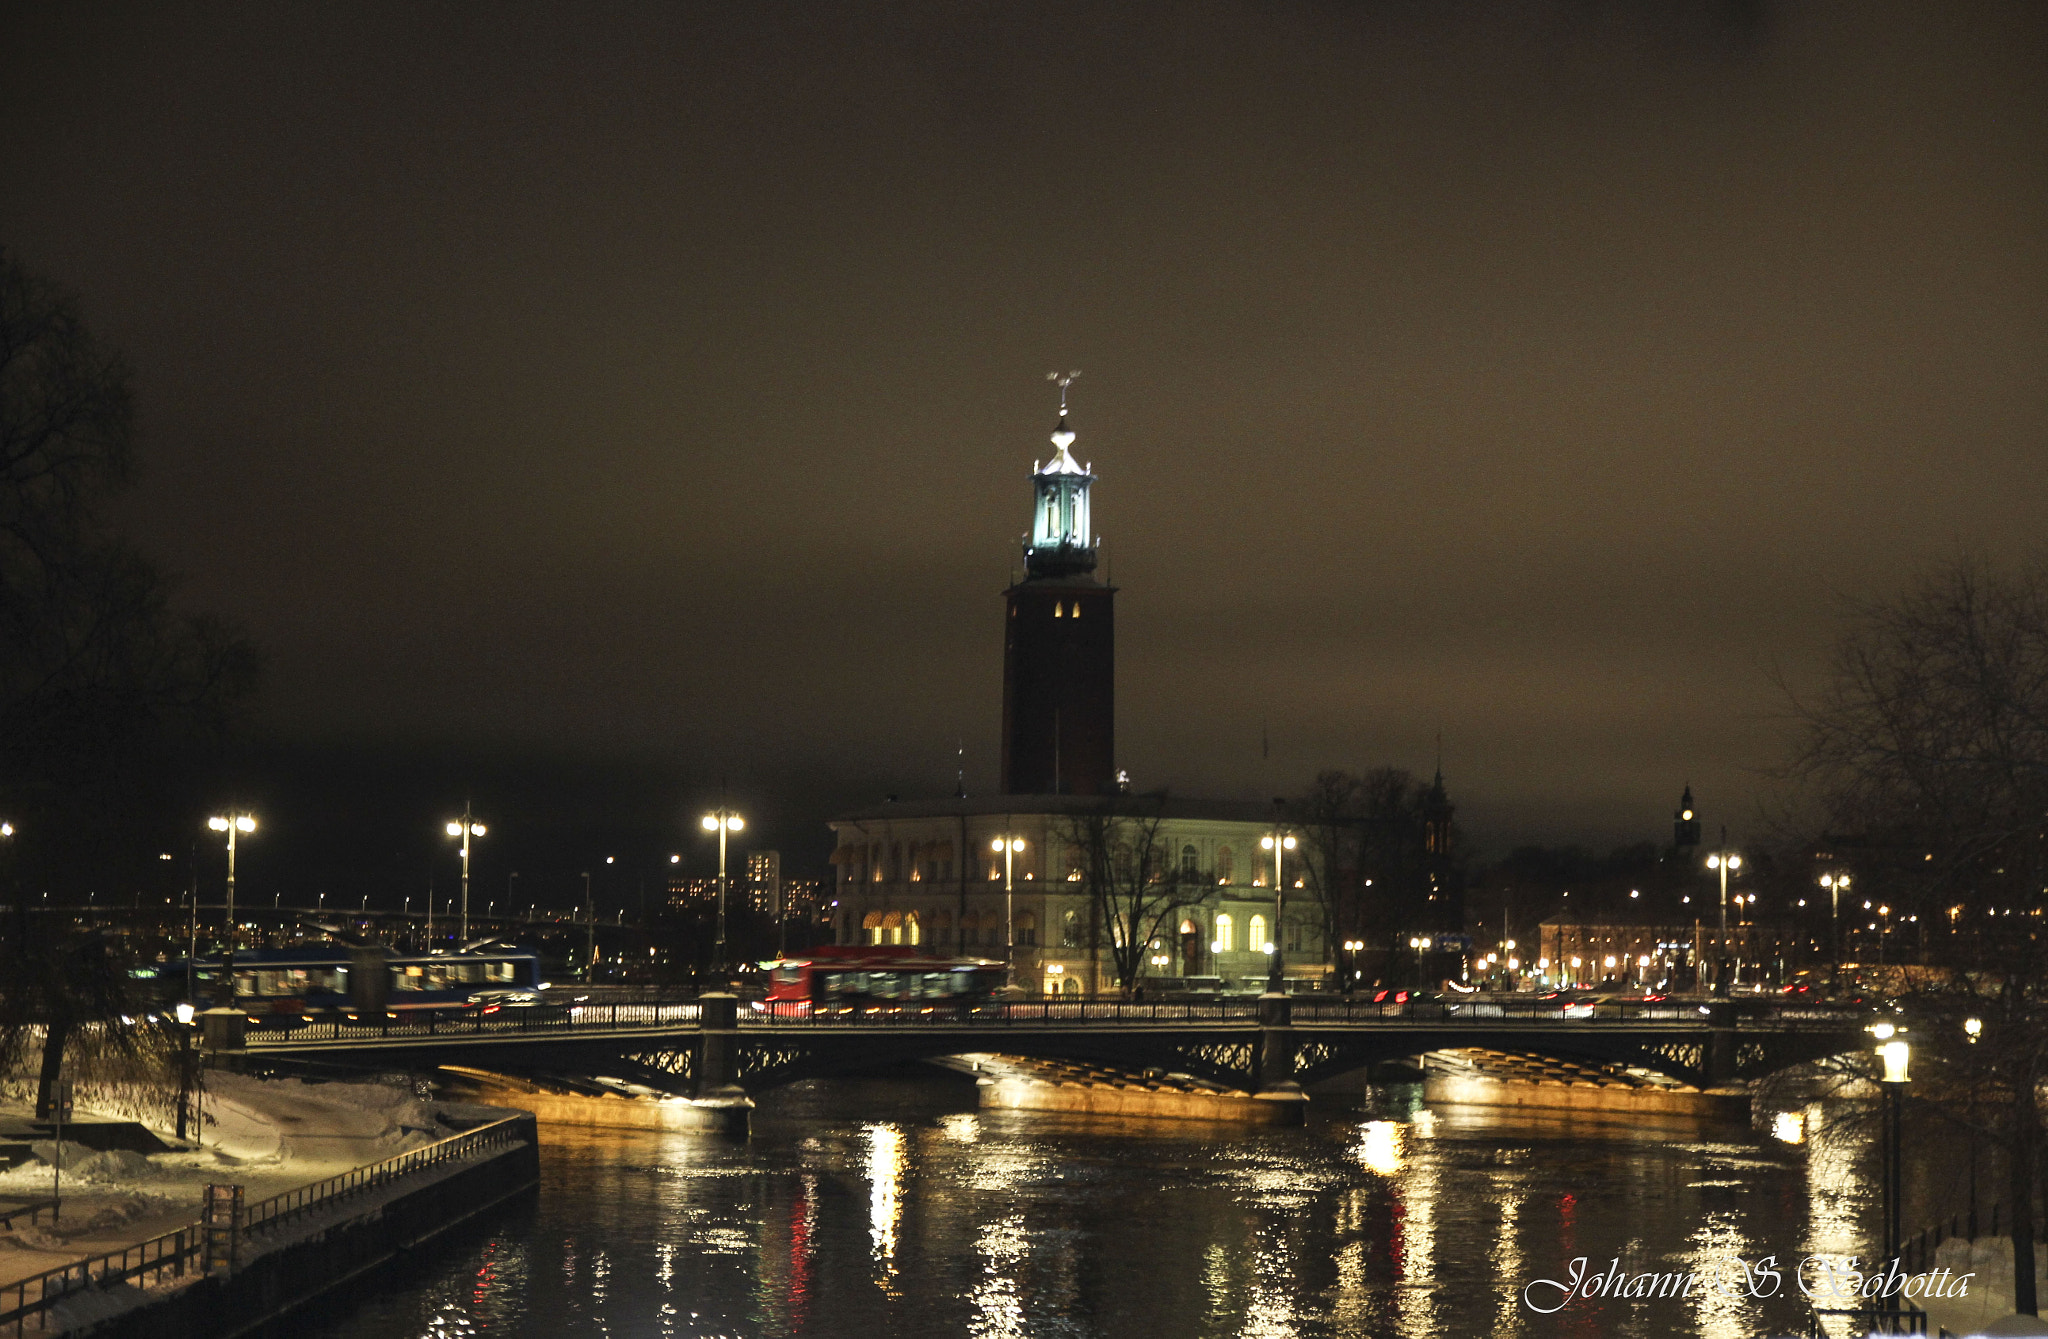 Photograph Stockholm by night by johann s. on 500px